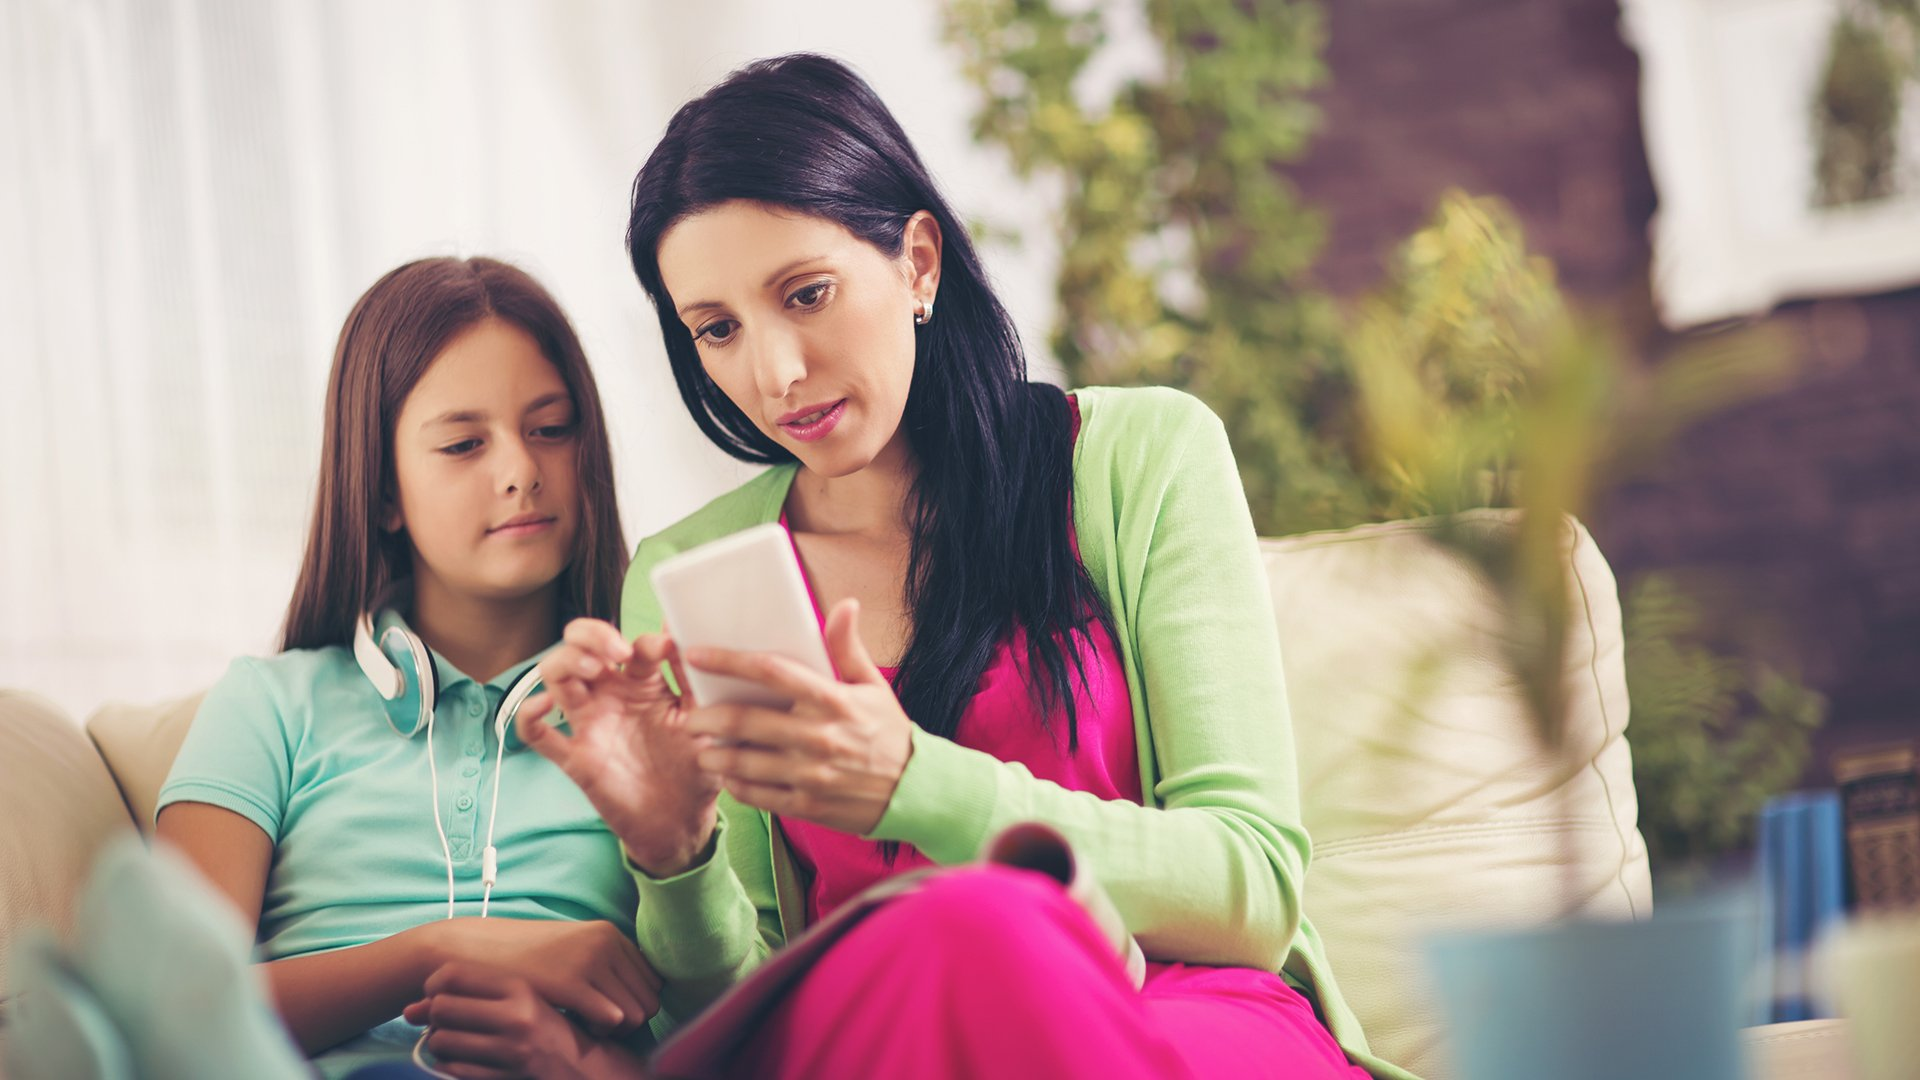 We Need To Talk About Kids And >> Why We Need To Talk To Our Kids About The Bad Stuff On The